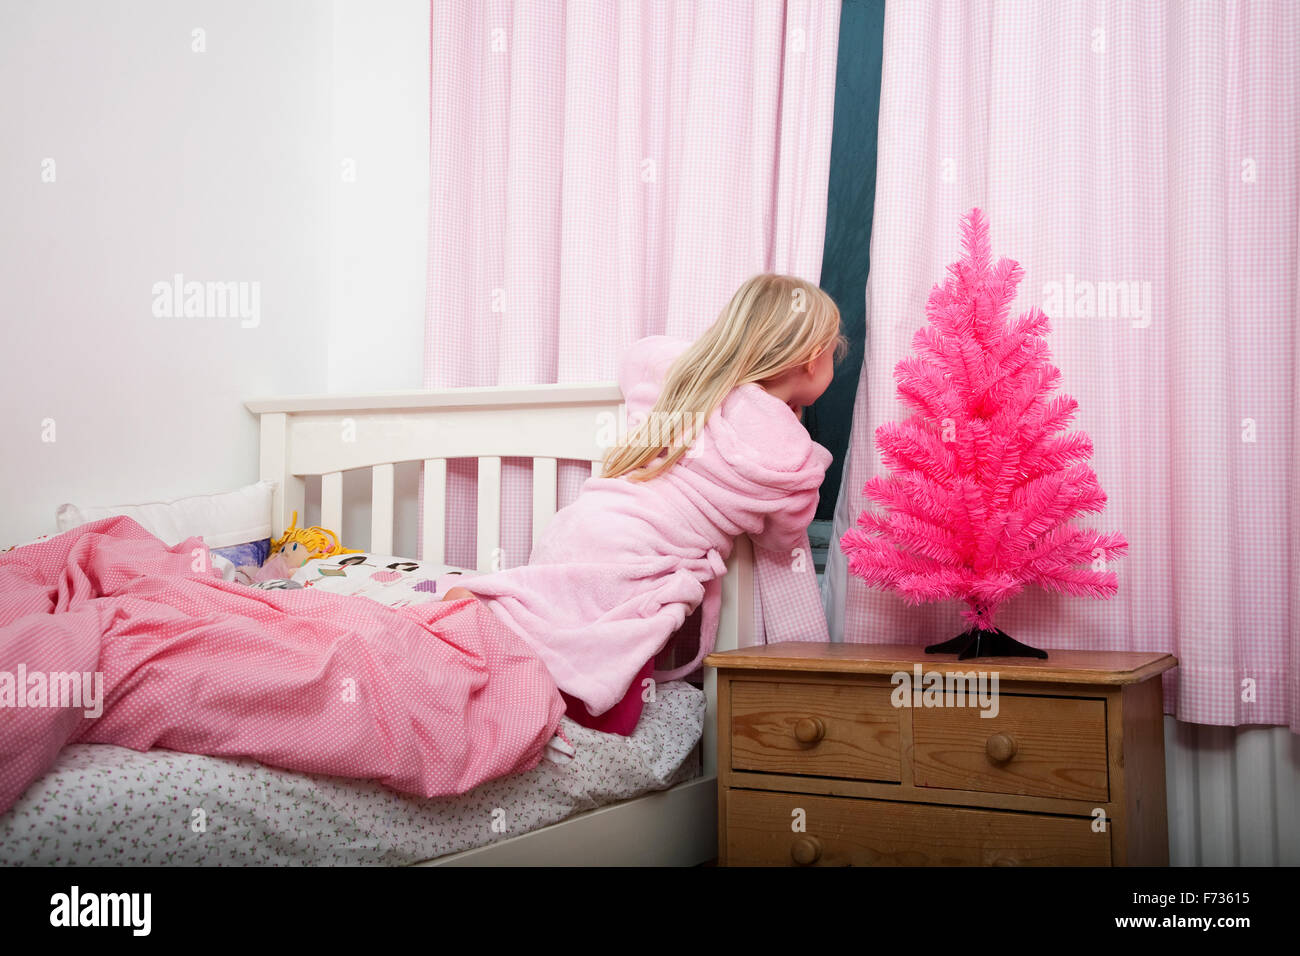 A girl peering through the curtains in her bedroom into the night at Christmas. - Stock Image